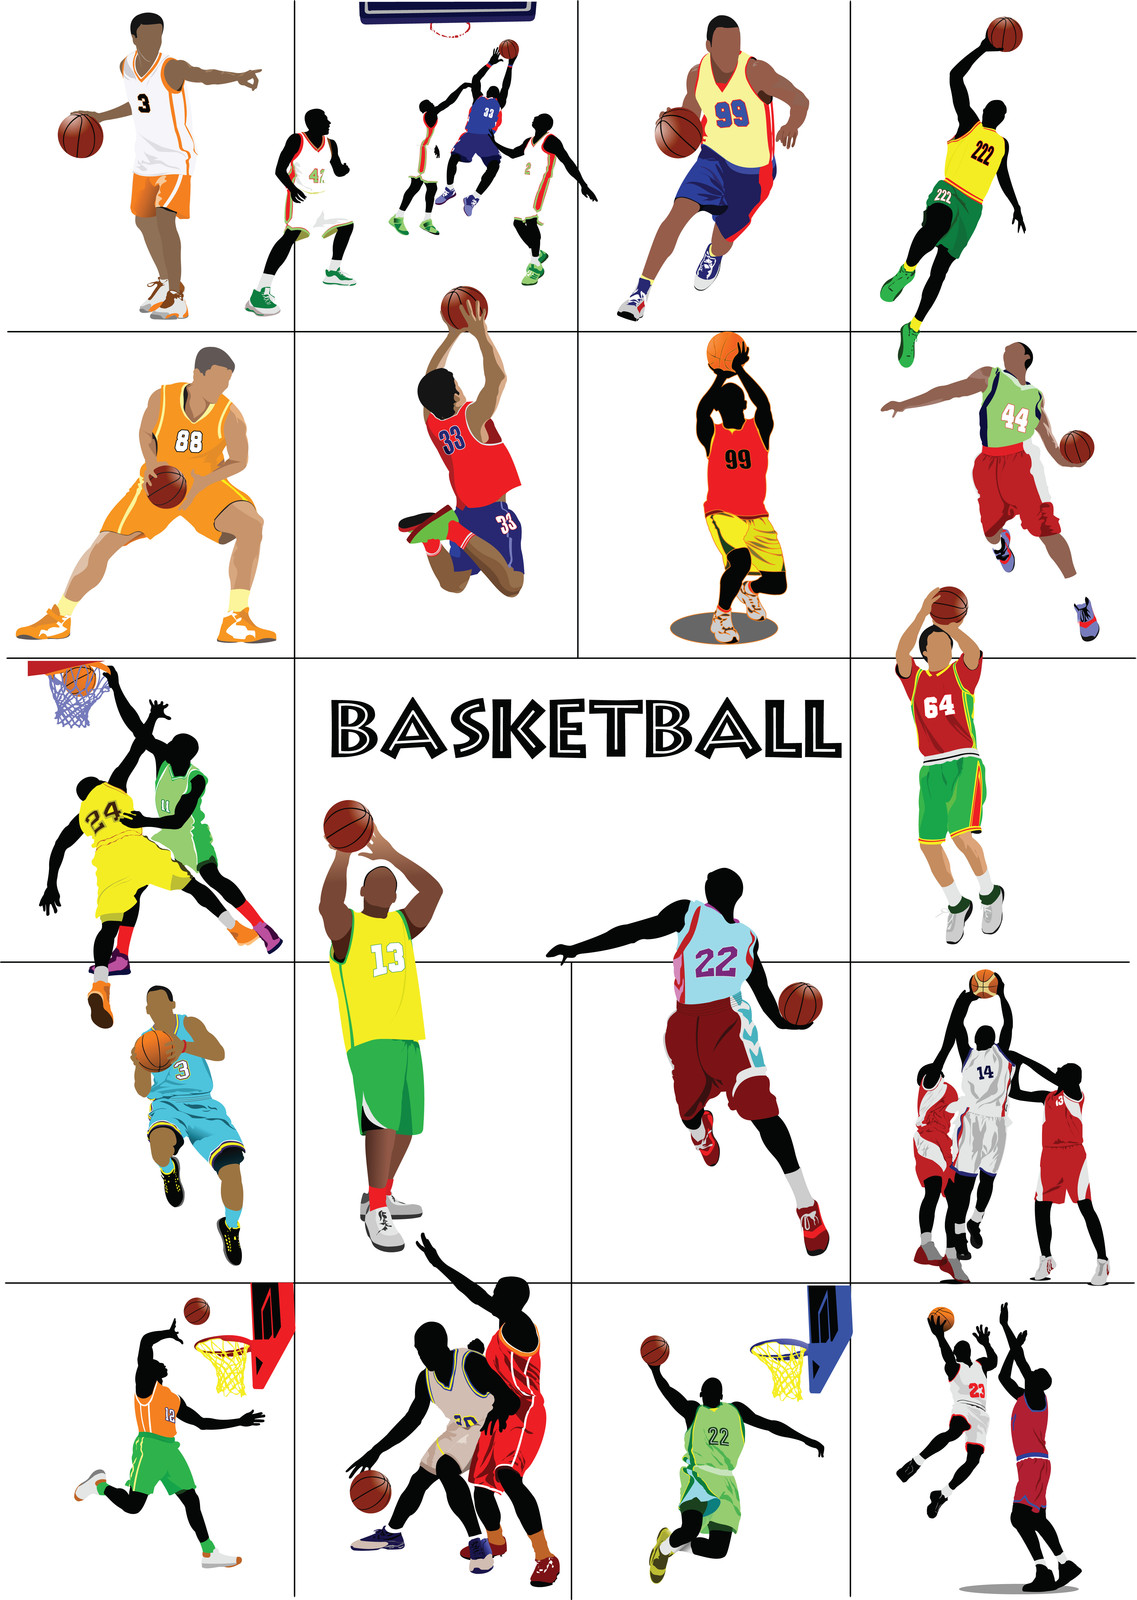 Basketball Collage.jpg